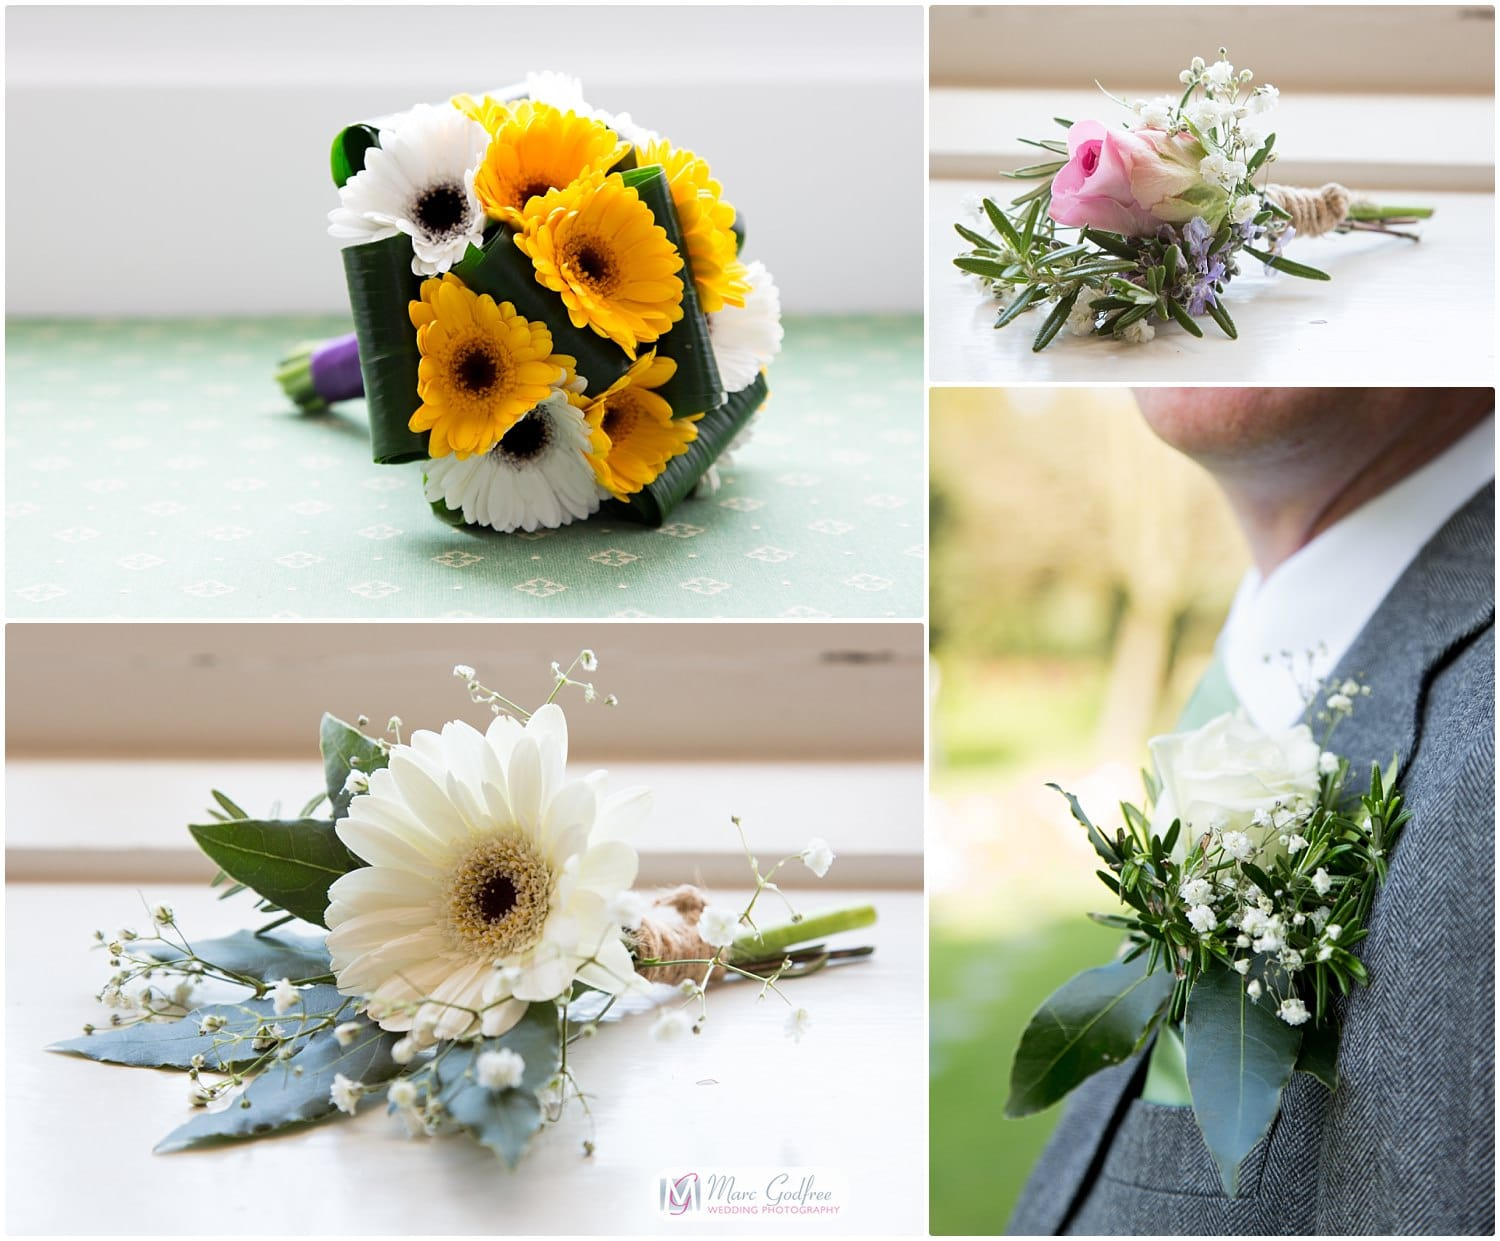 Post wedding flower ideas-staff